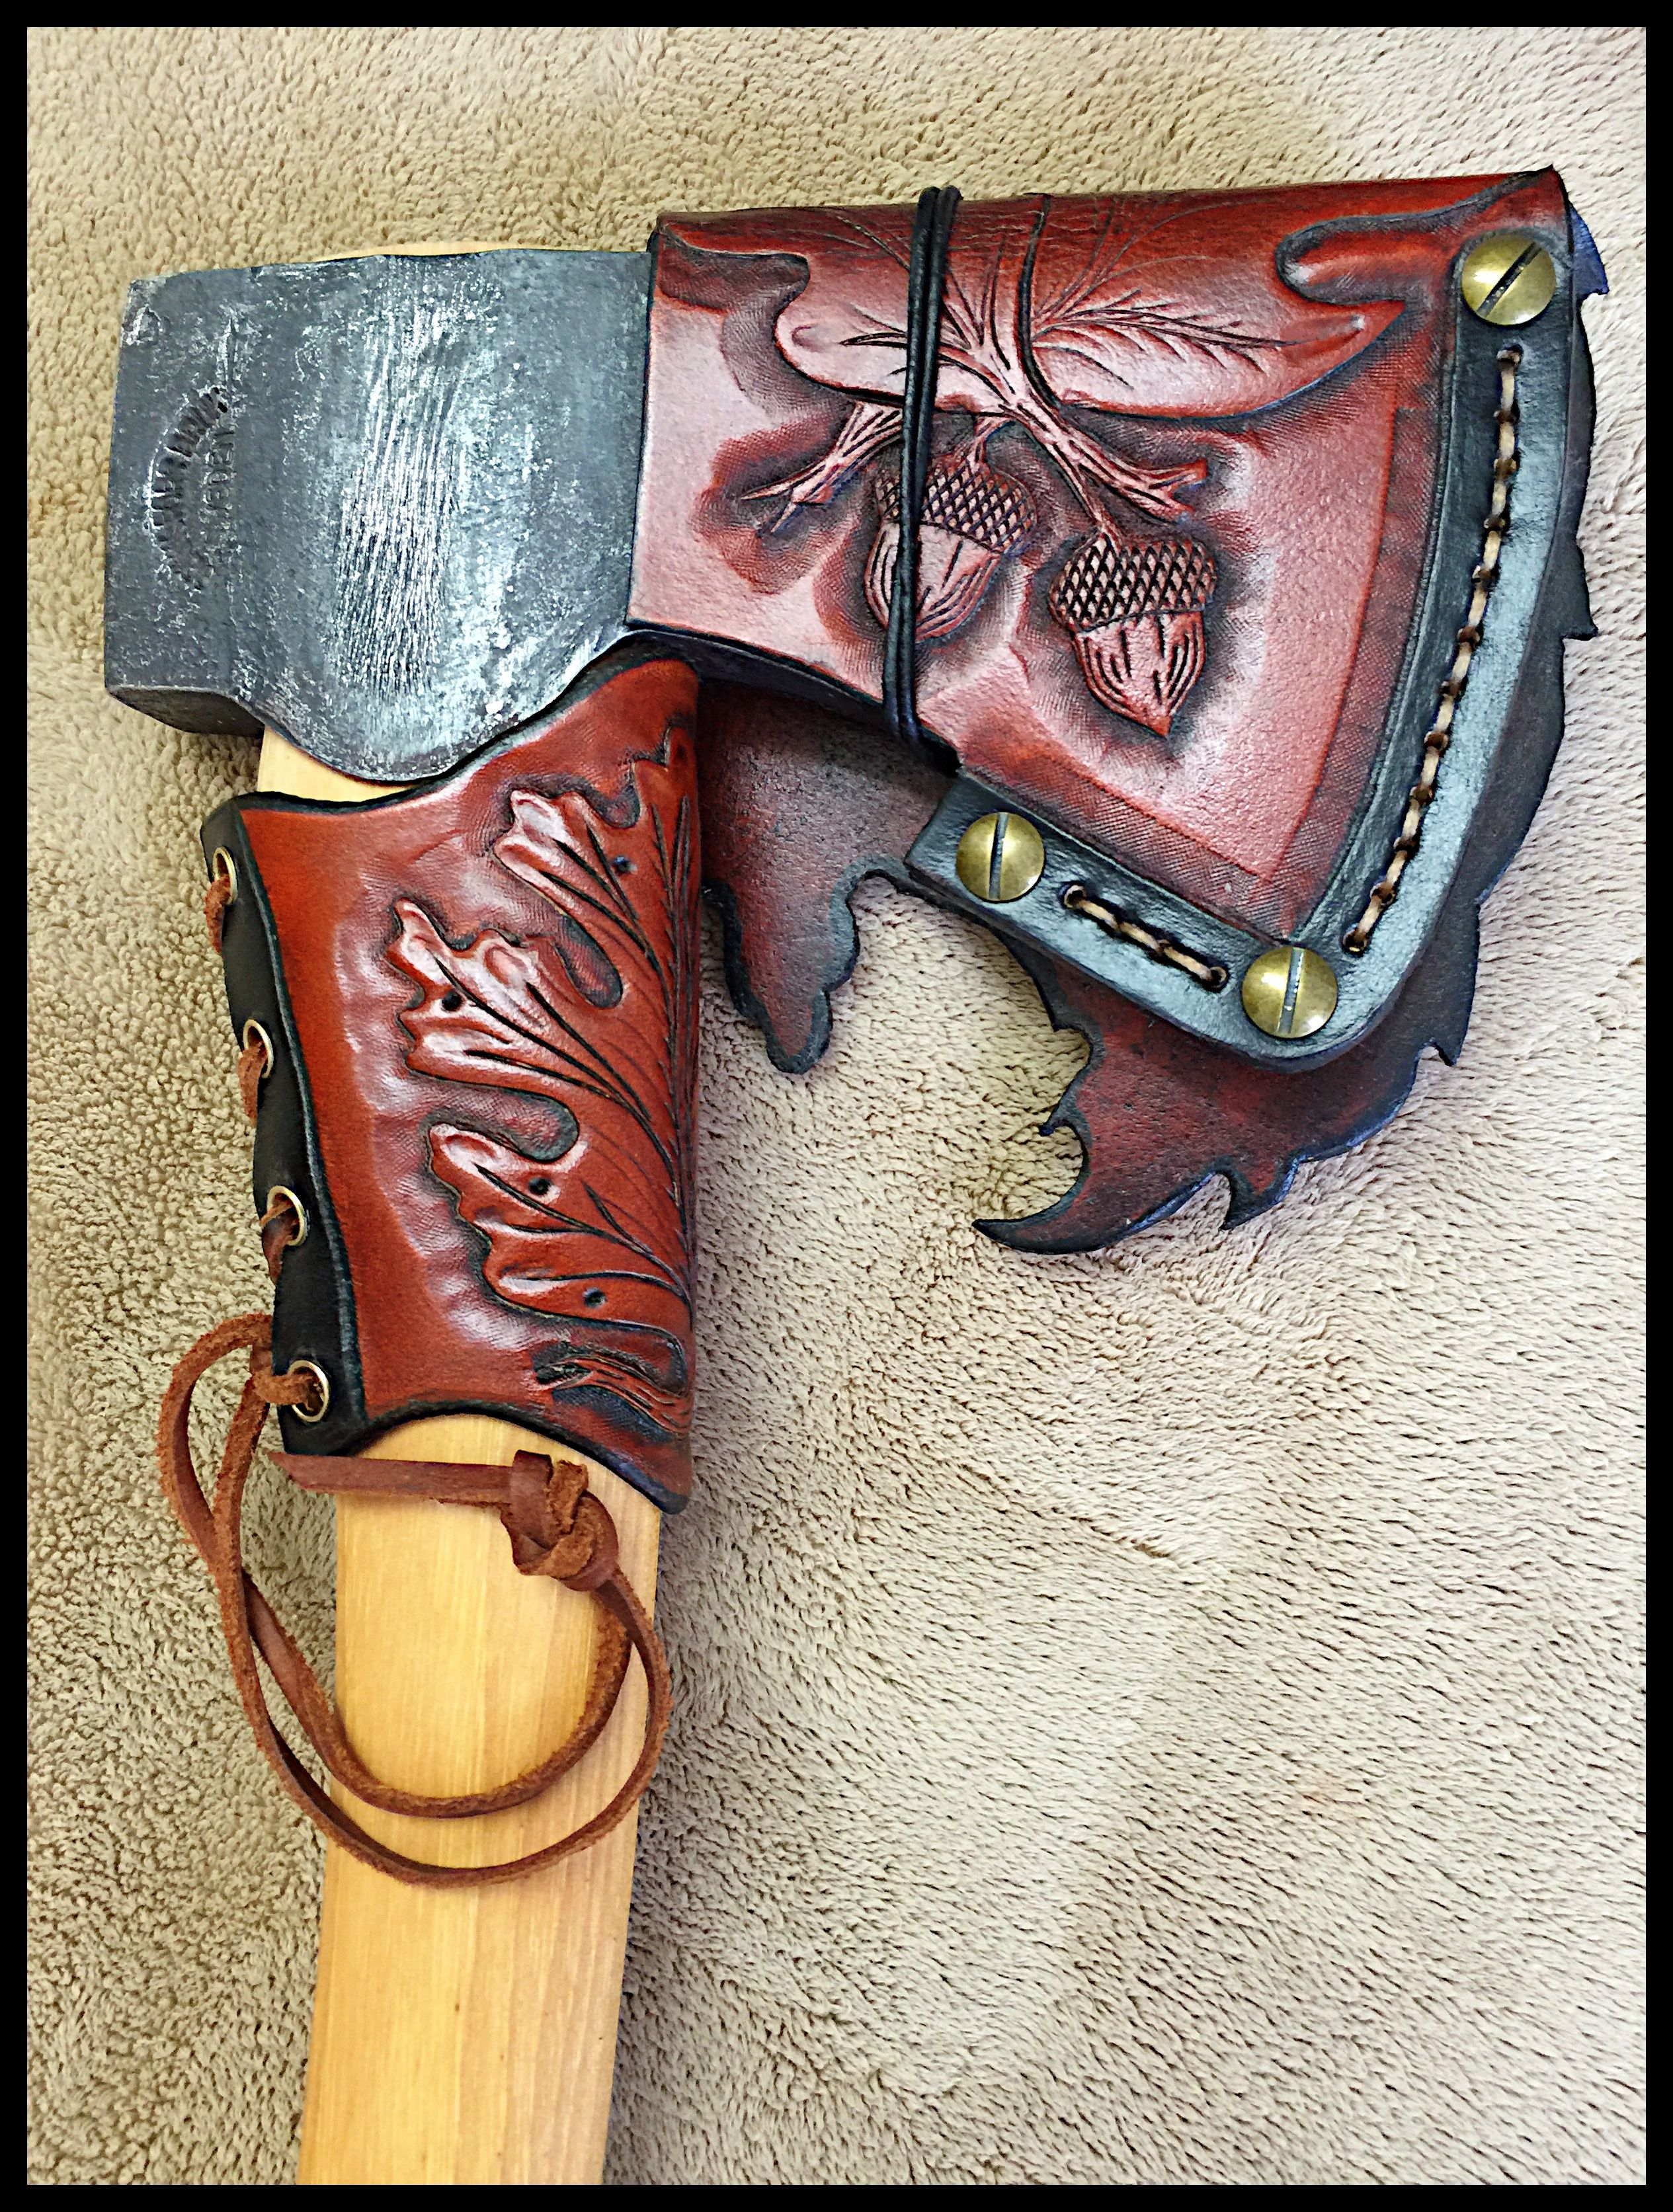 Gransfors Bruks Scandinavian Forest Axe 430 With Custom Leather By John Black Leather Hand Tooled Leather Leather Pouch